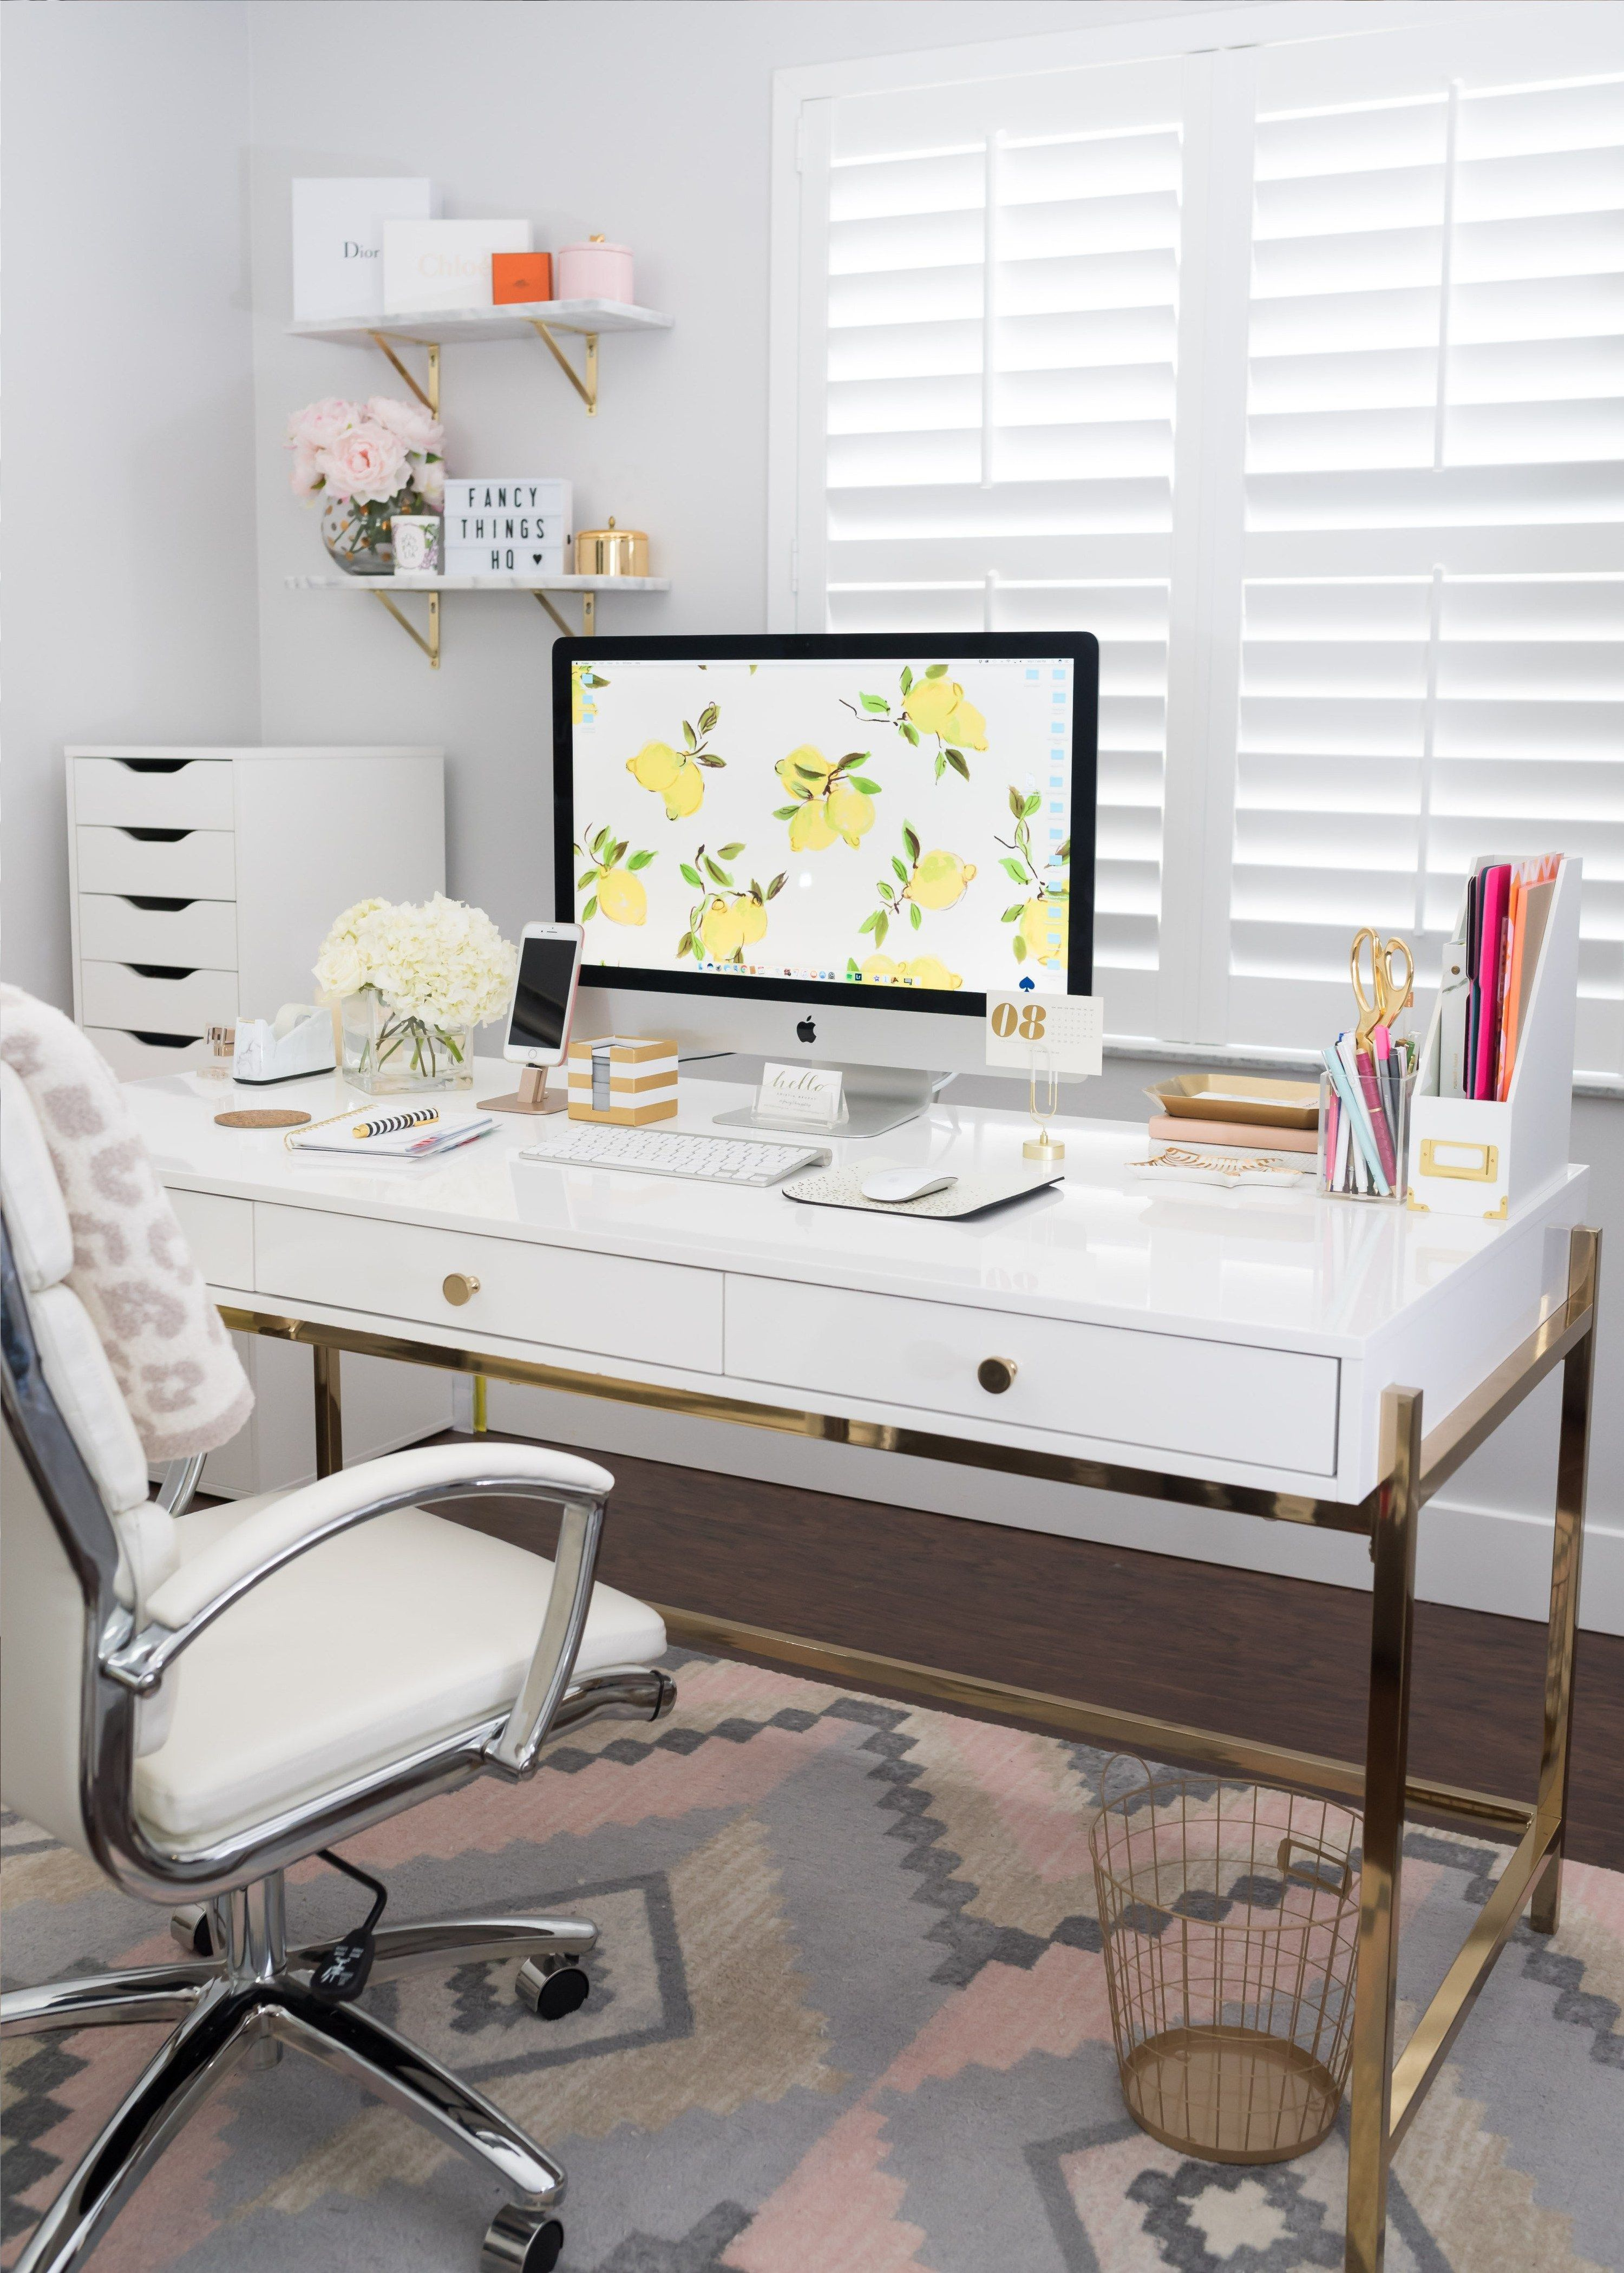 Home Office Decor Home Office And Home Study Style Suggestions,